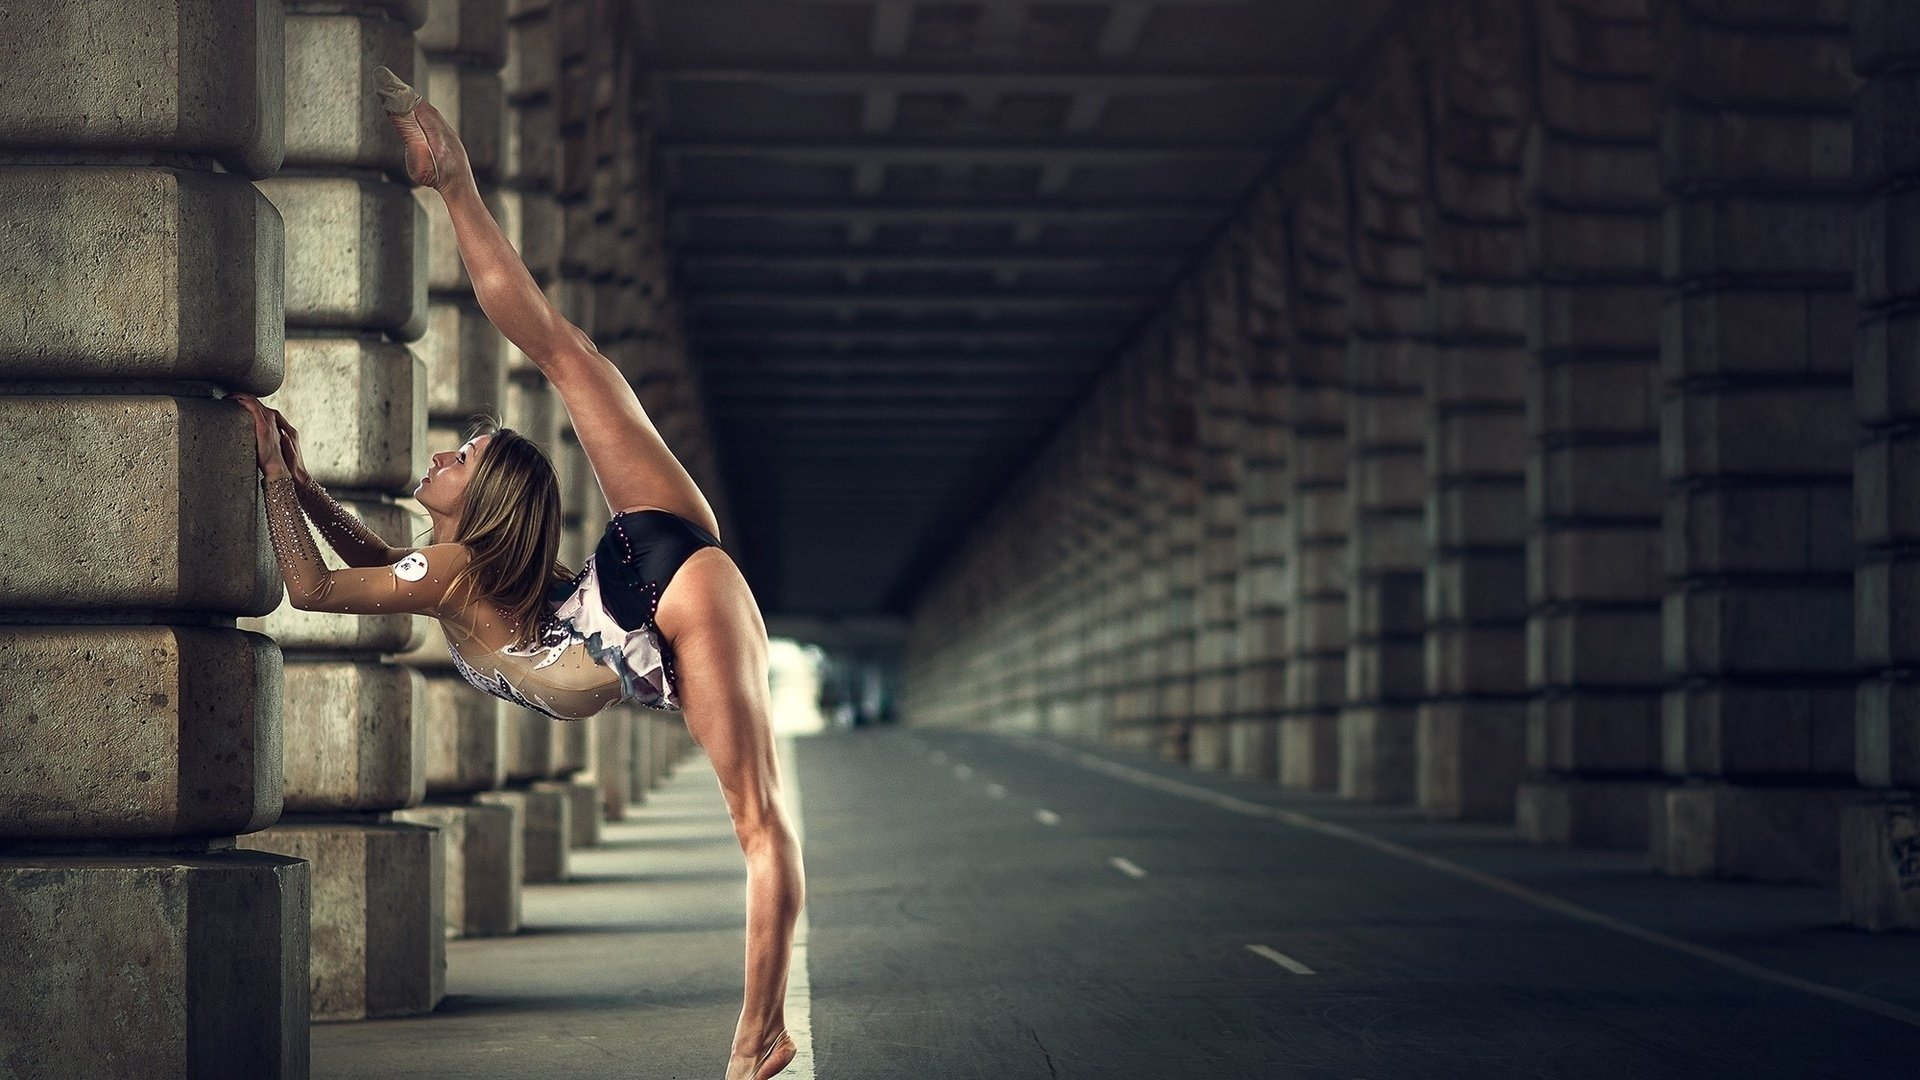 Gymnastics Backgrounds Full HD